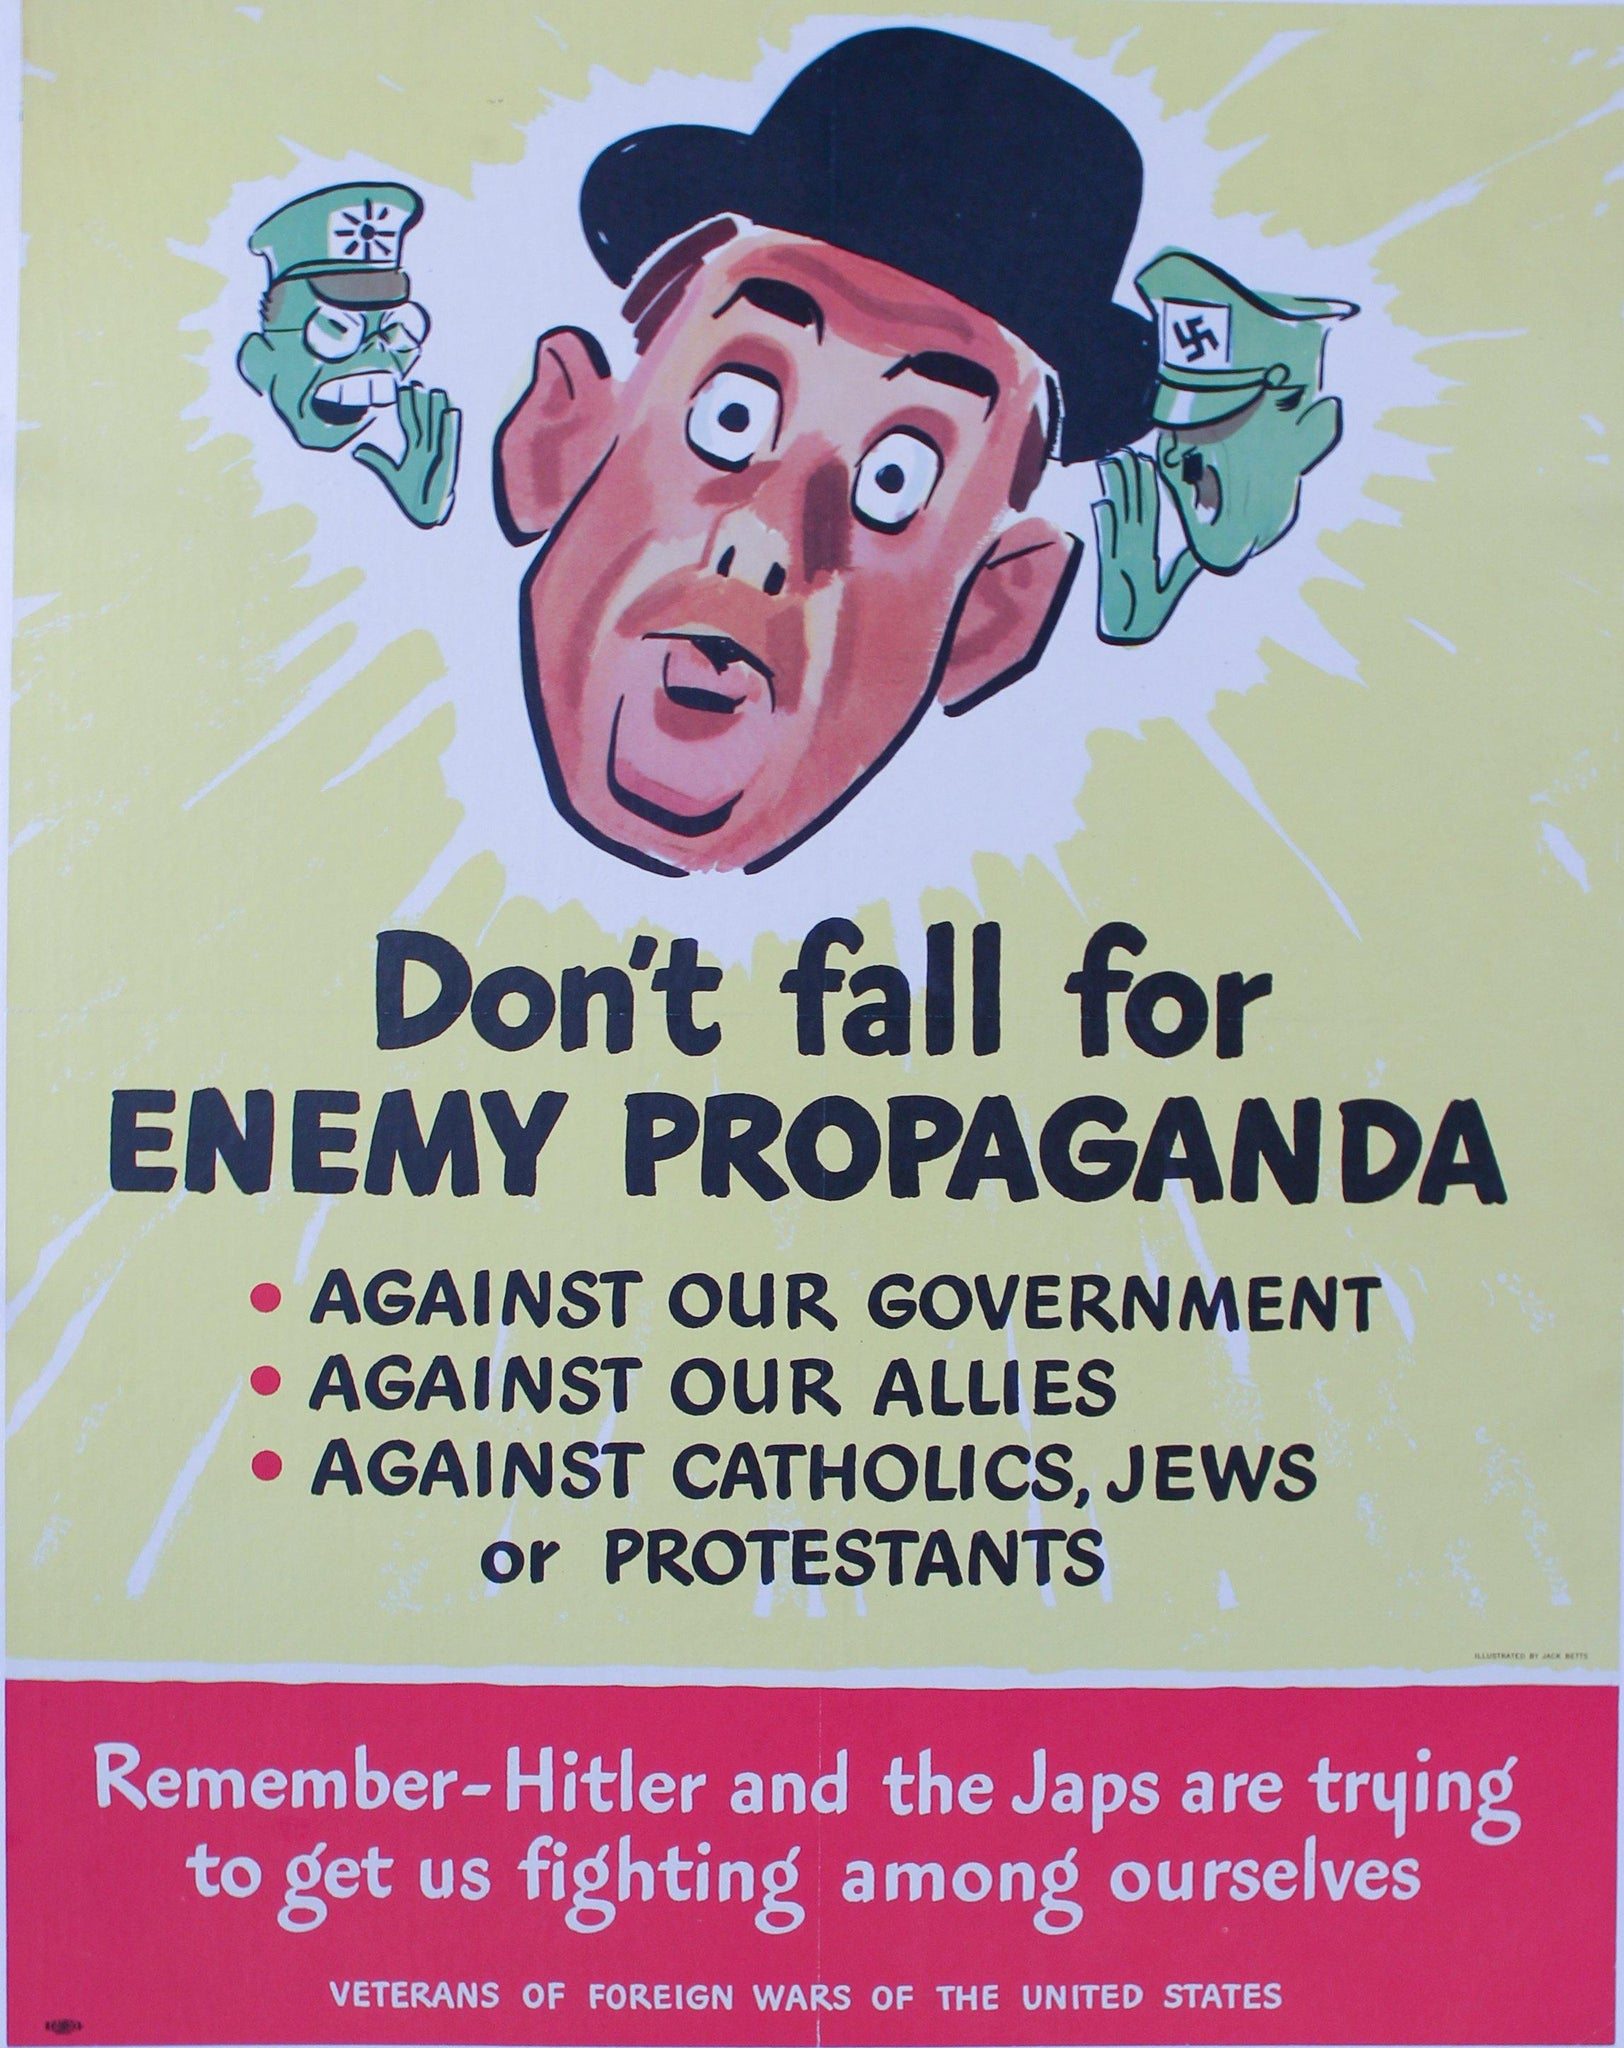 1943 Don't Fall For Enemy Propaganda Against Government, Our Allies, Catholics, Jews or Protestants